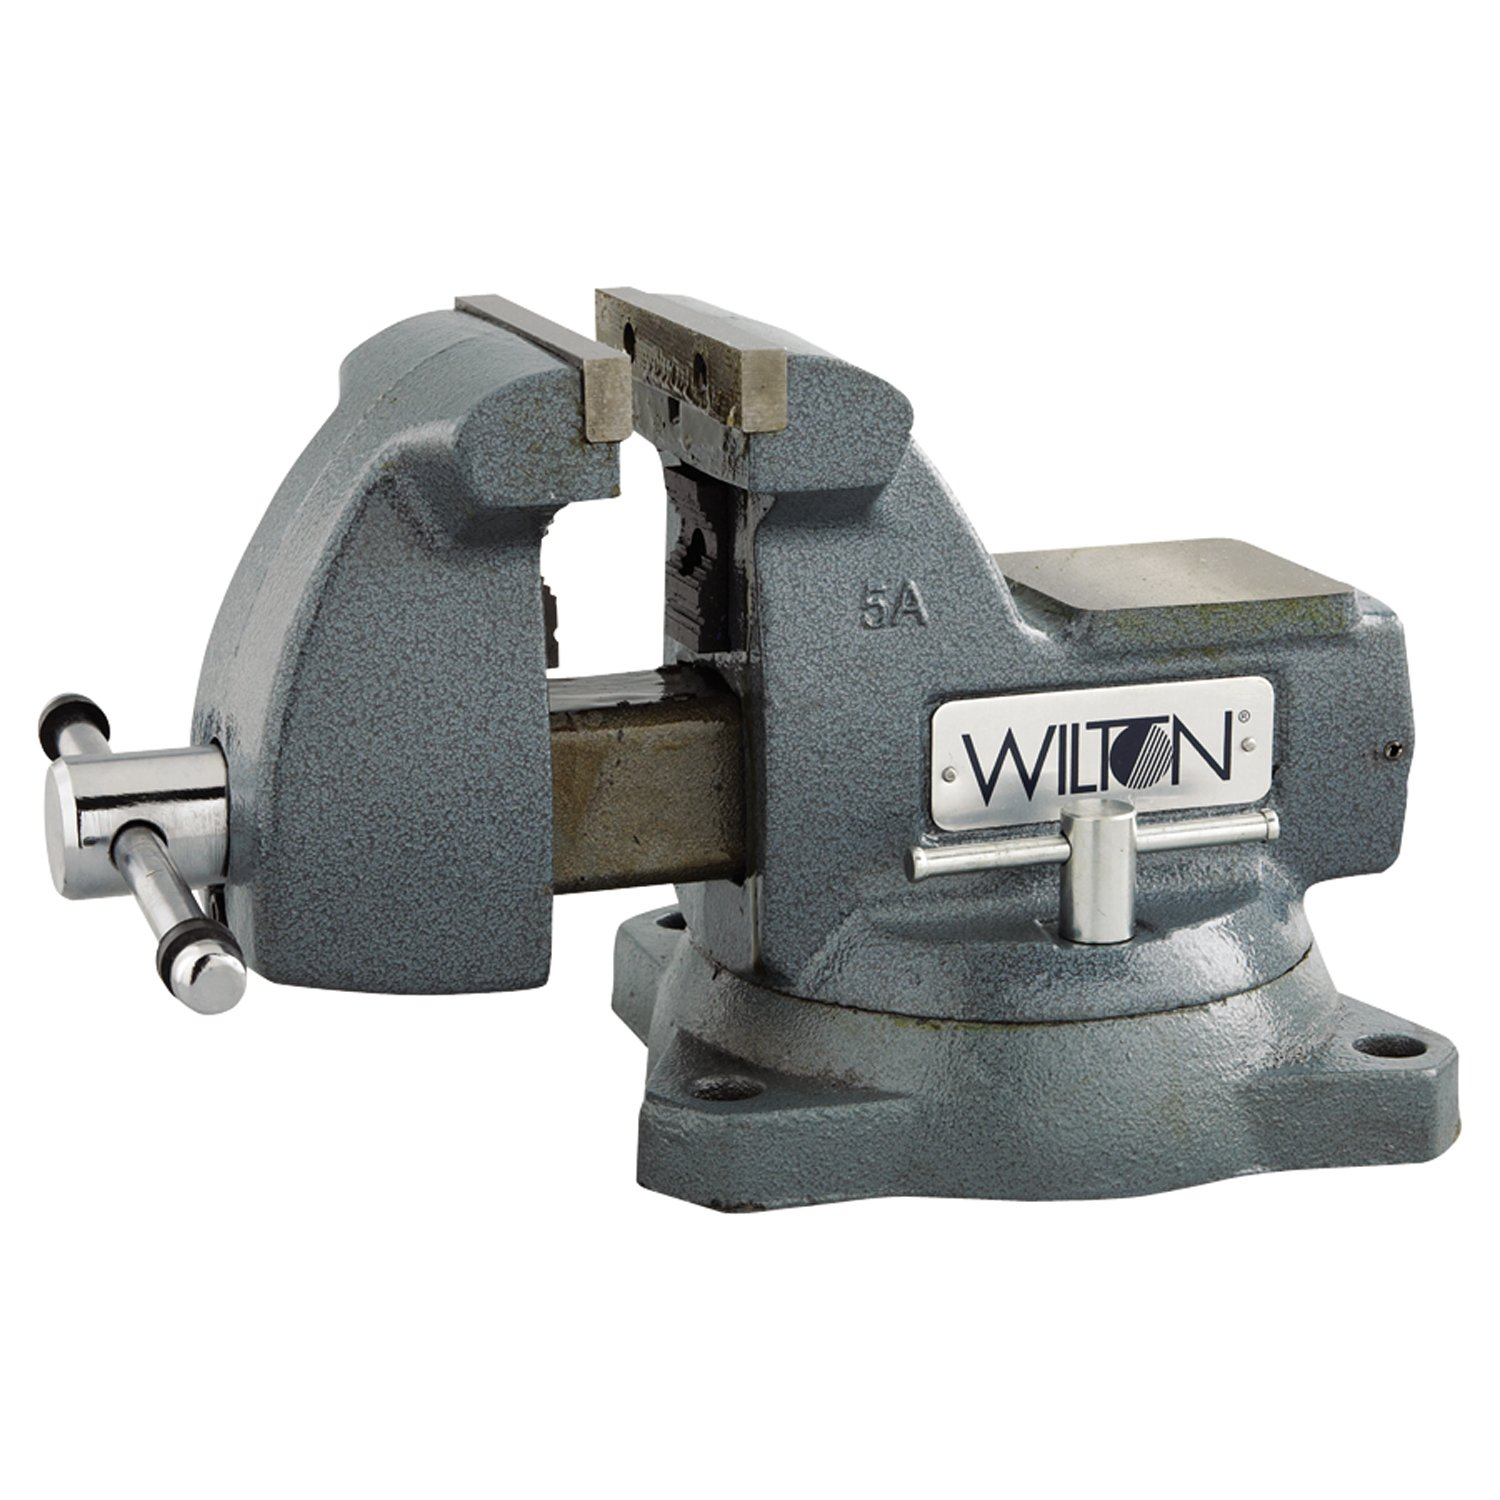 Wilton 21400 Machinists Vises, 5'' Jaw, 3 3/4'' Throat, Swivel Base by Wilton